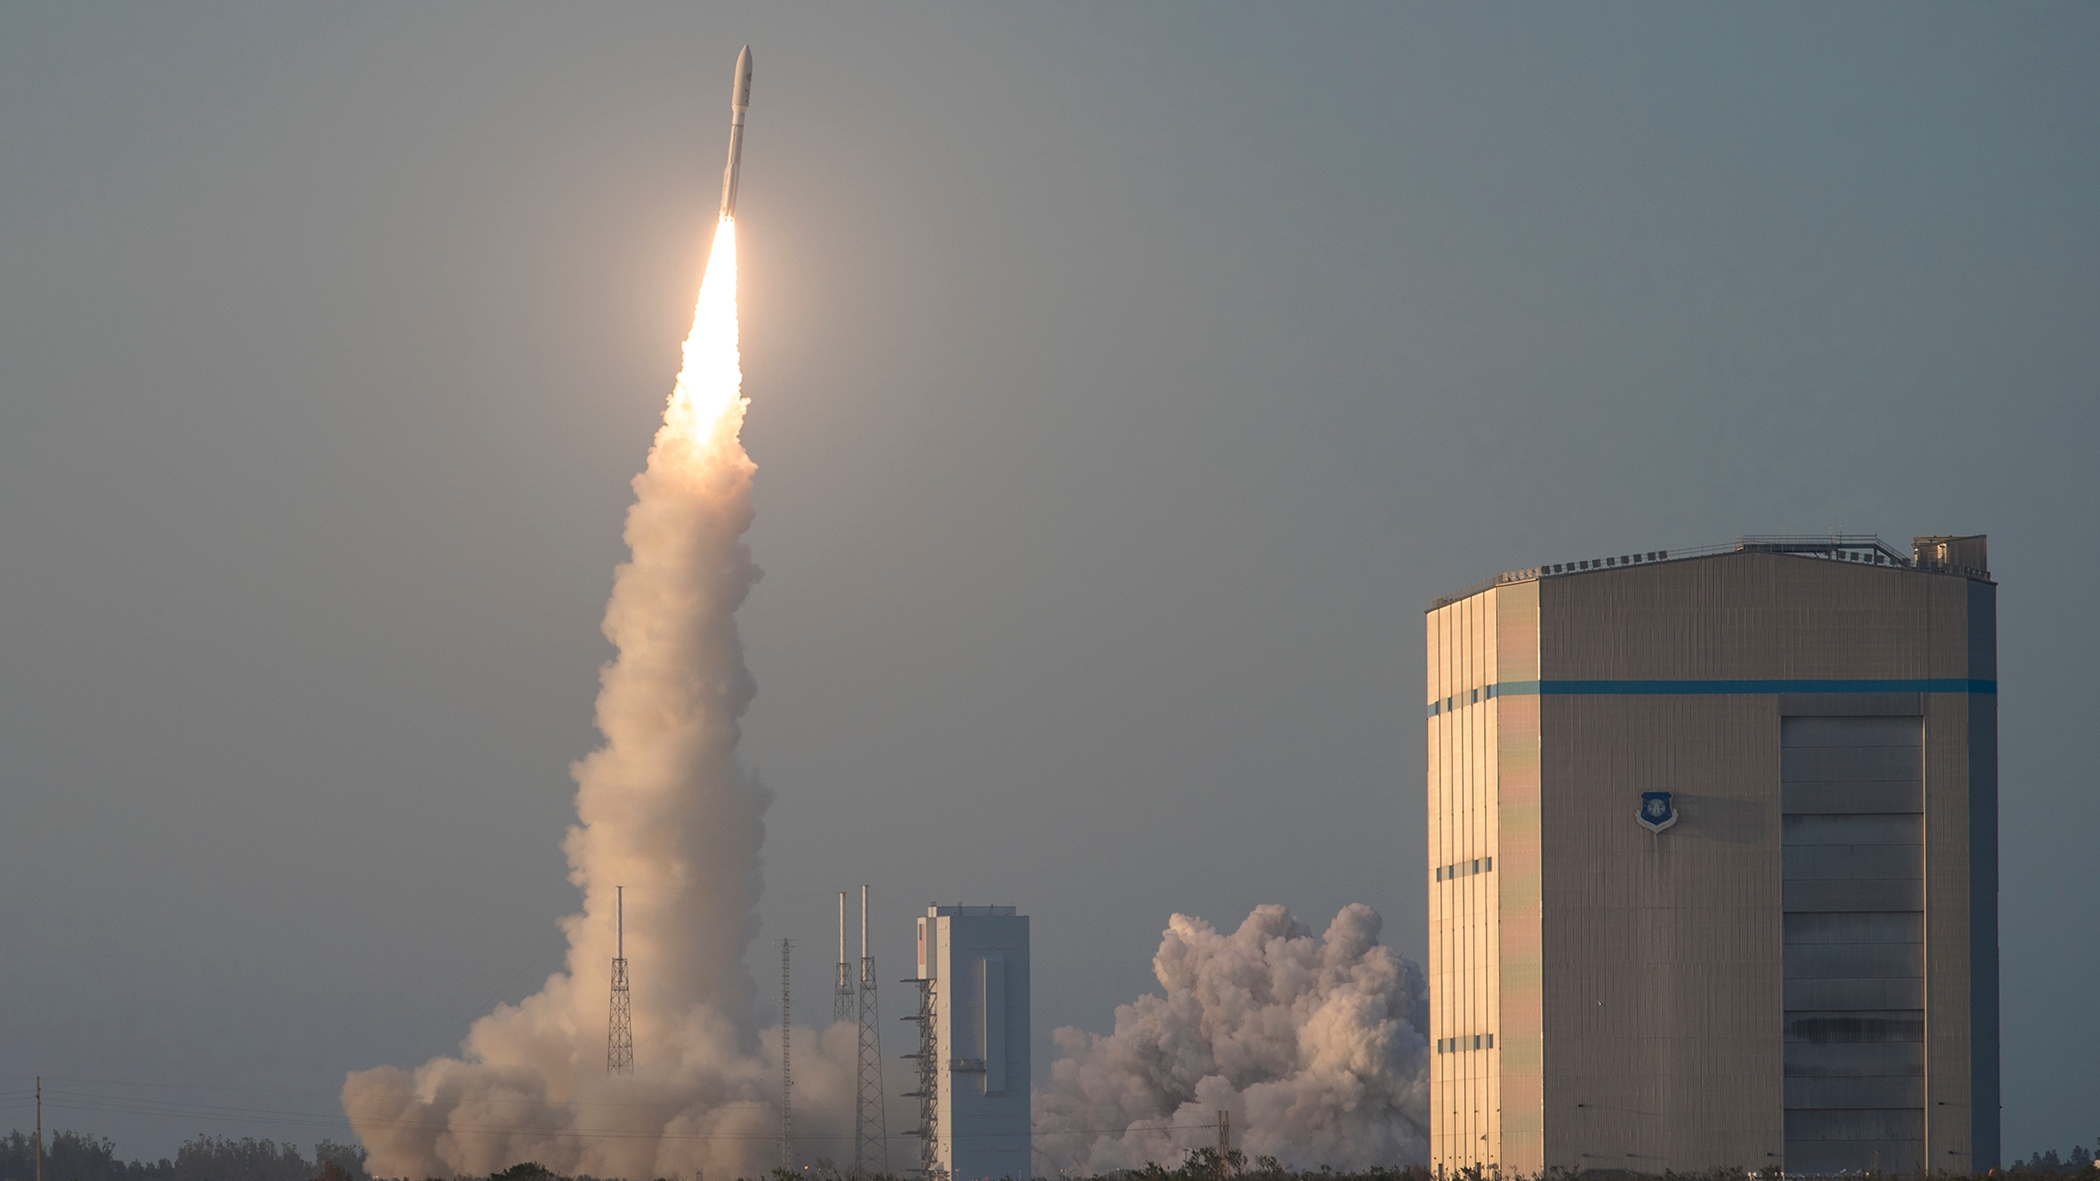 A United Launch Alliance Atlas V rocket launches into the air at Cape Canaveral Air Force Station, Florida, April 14, 2018. (Staff Sgt. Christopher Stoltz/U.S. Air Force)